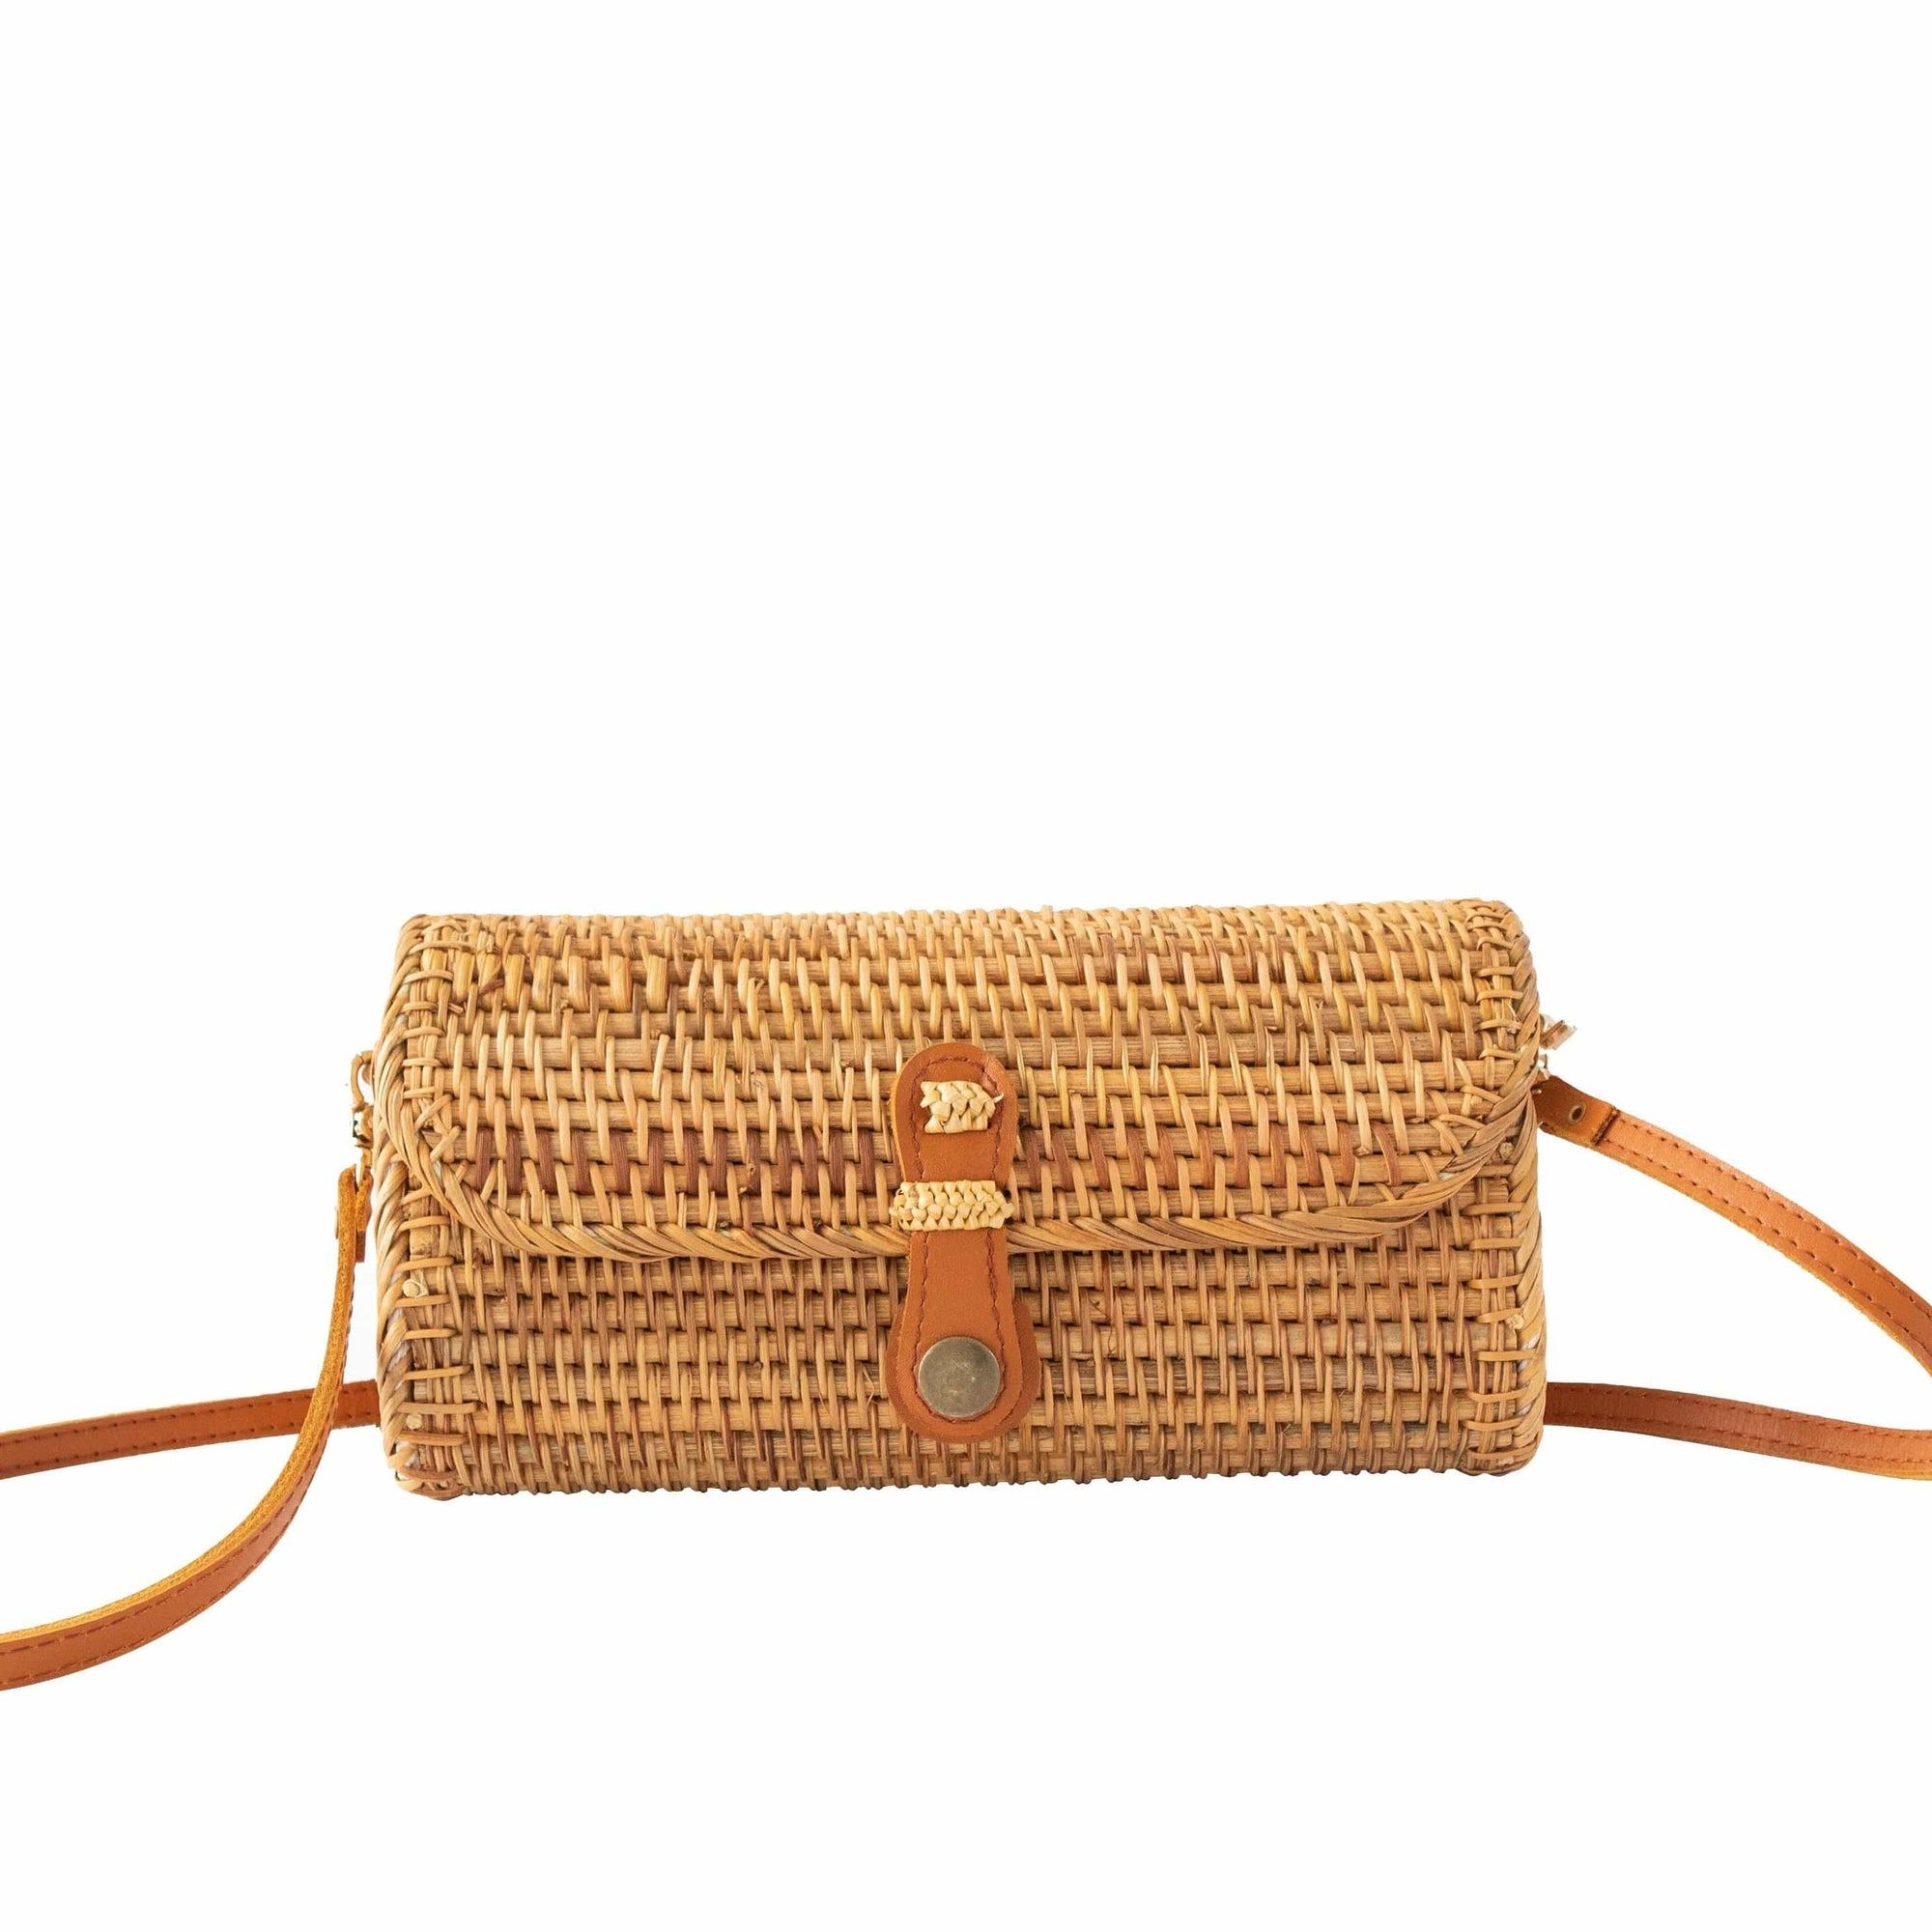 Made Terra Straw bags Rattan Clutch Purse & Bag | Straw Wicker Evening Clutch Bag (Vietnamese Pattern)